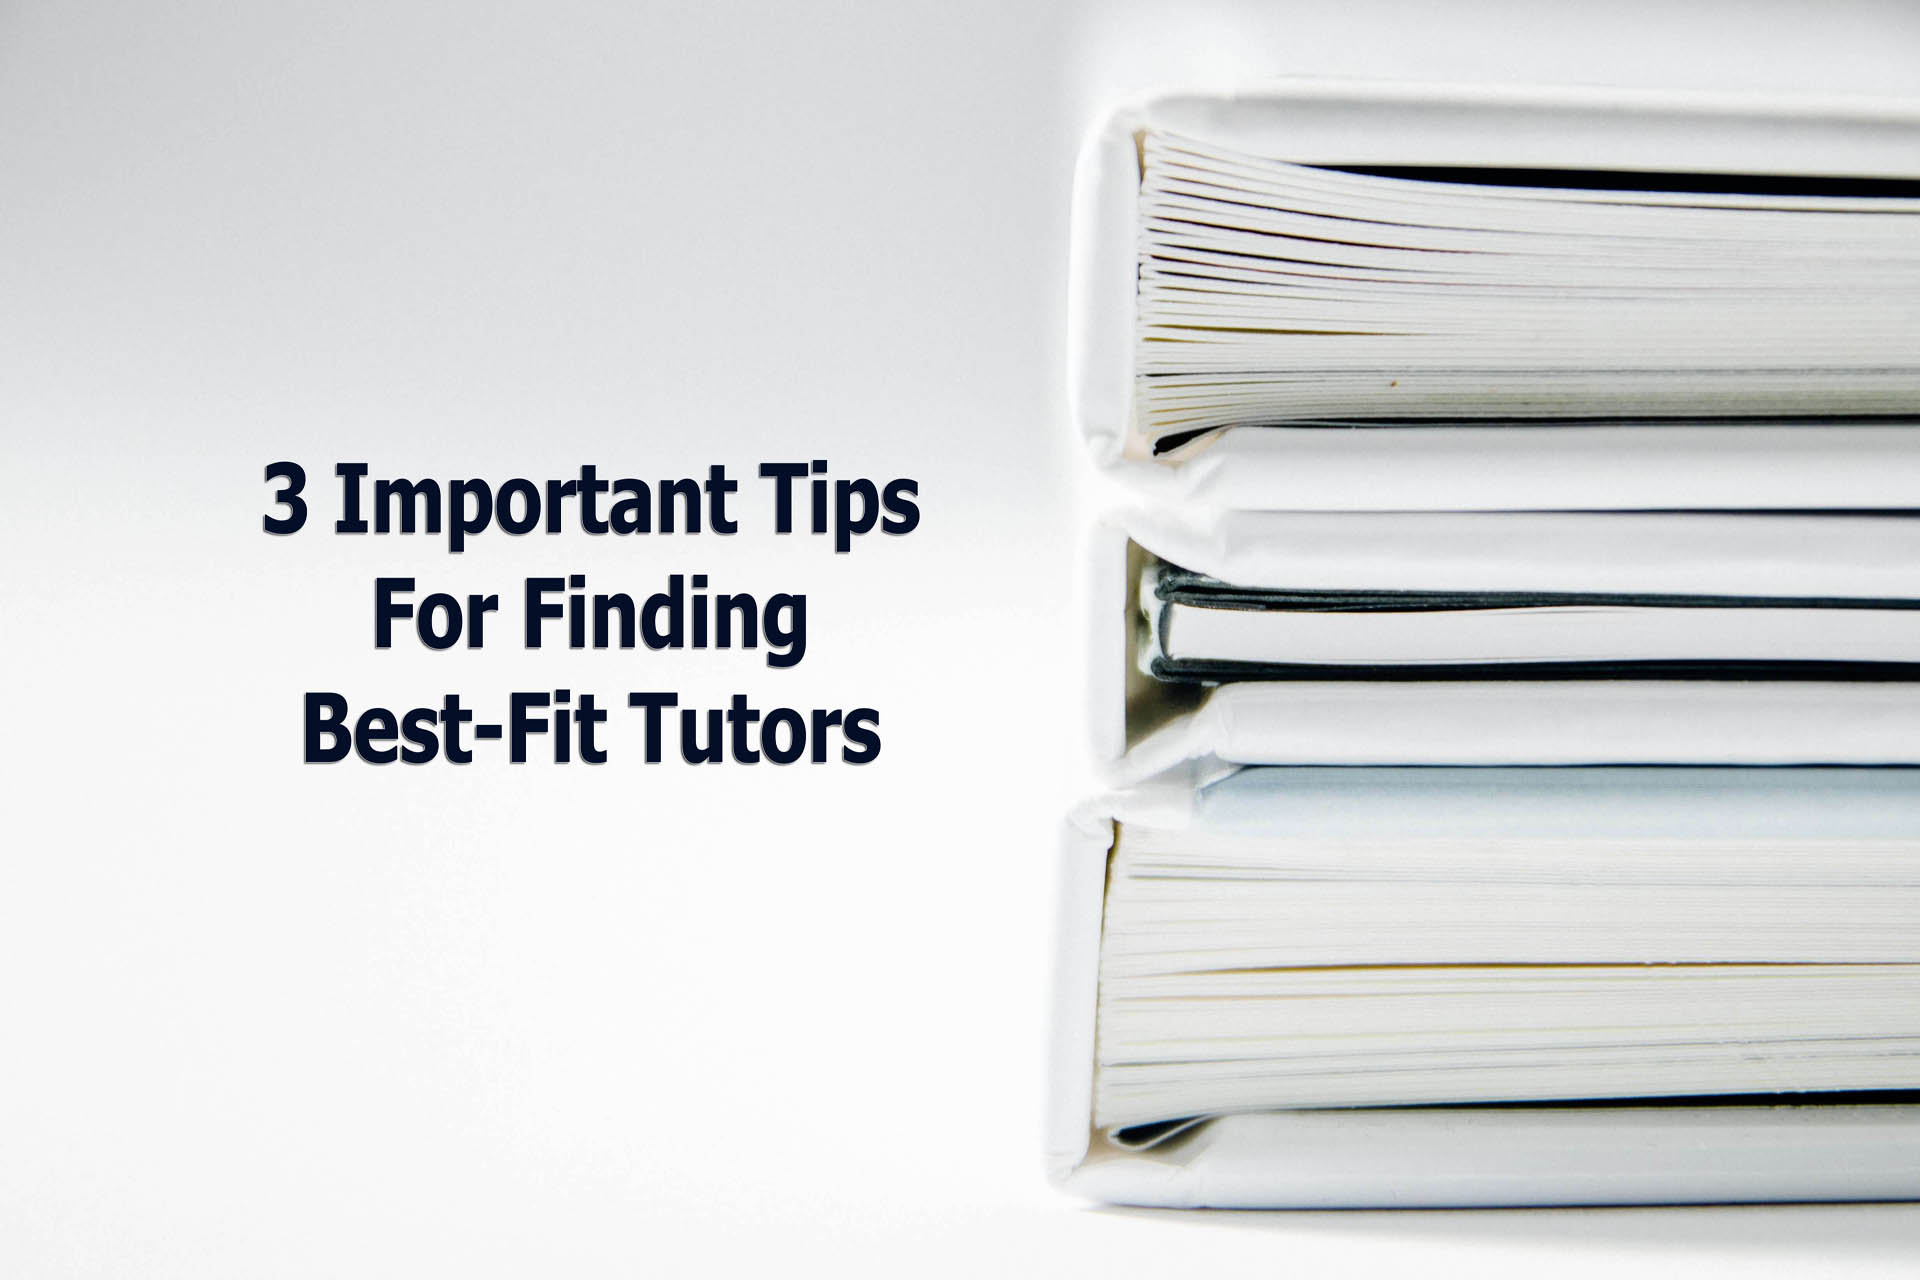 3 Important Tips For Finding Best-Fit Tutors